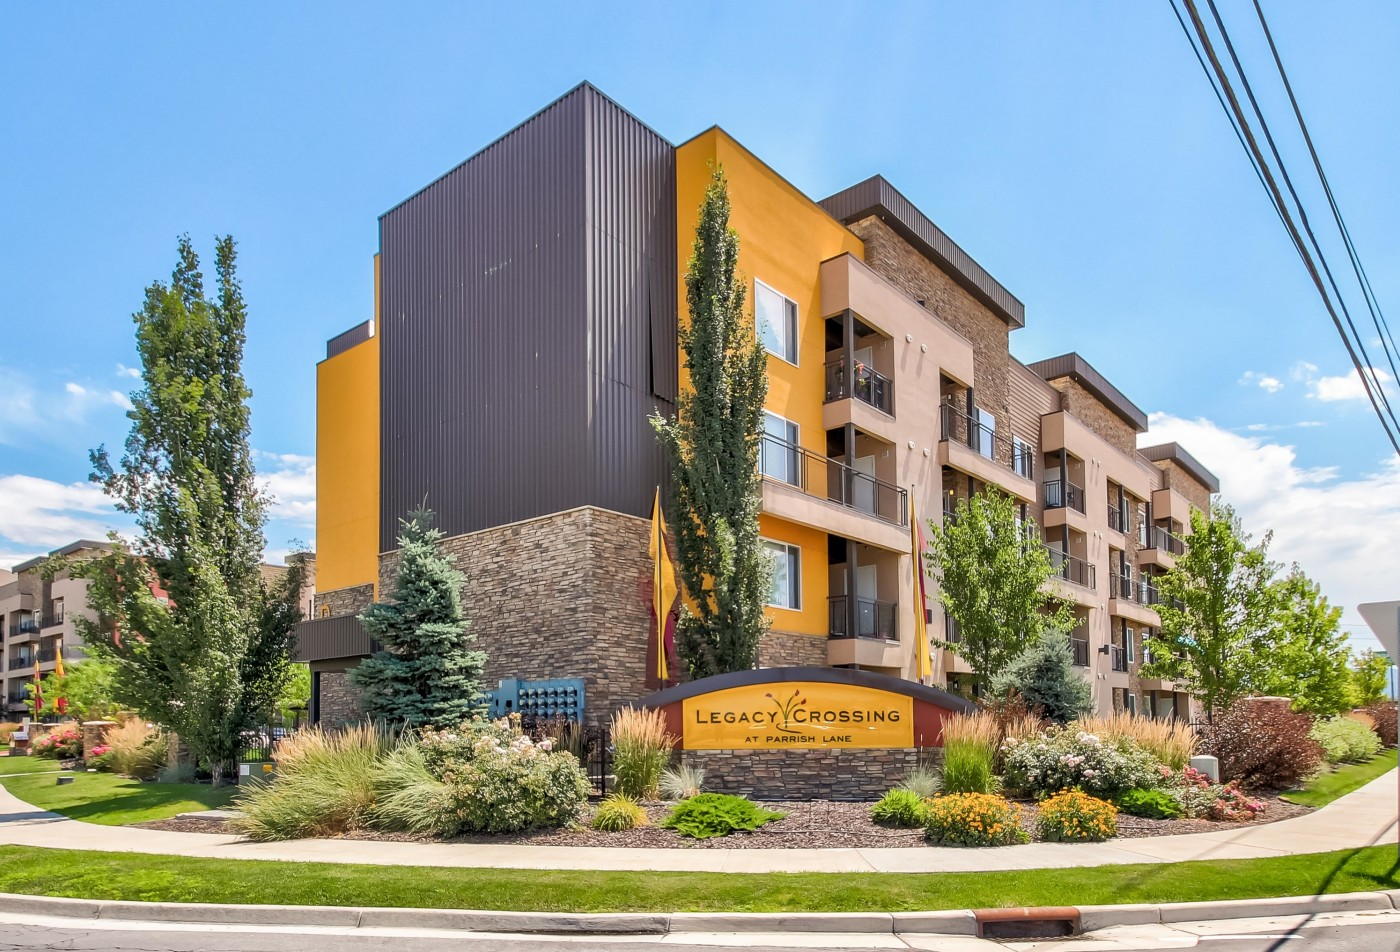 Legacy Crossing has been selected to receive the Small Business Excellence Award for 2018 in the Apartments Category! For full details, click HERE